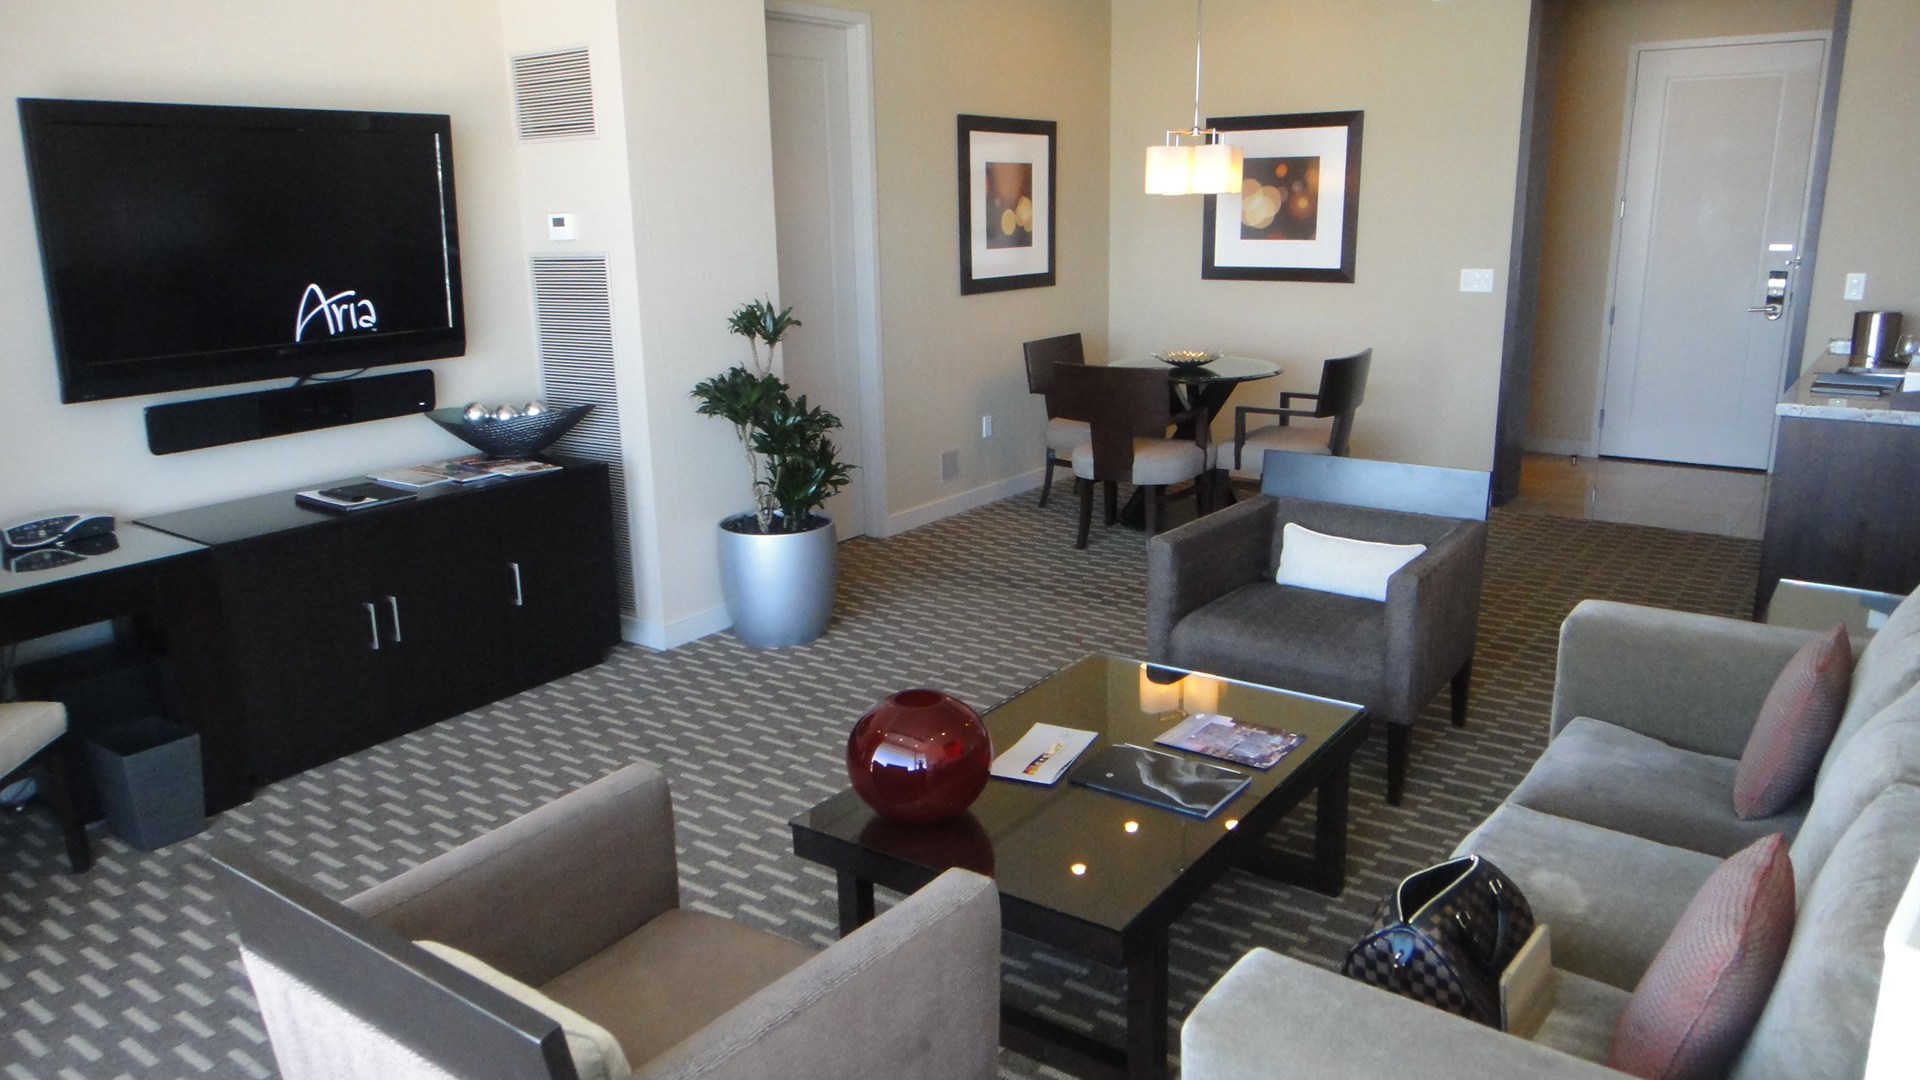 Mgm Grand 2 Bedroom Suite The Sky Suites At Aria Hotel In Las Vegas Shirley Style